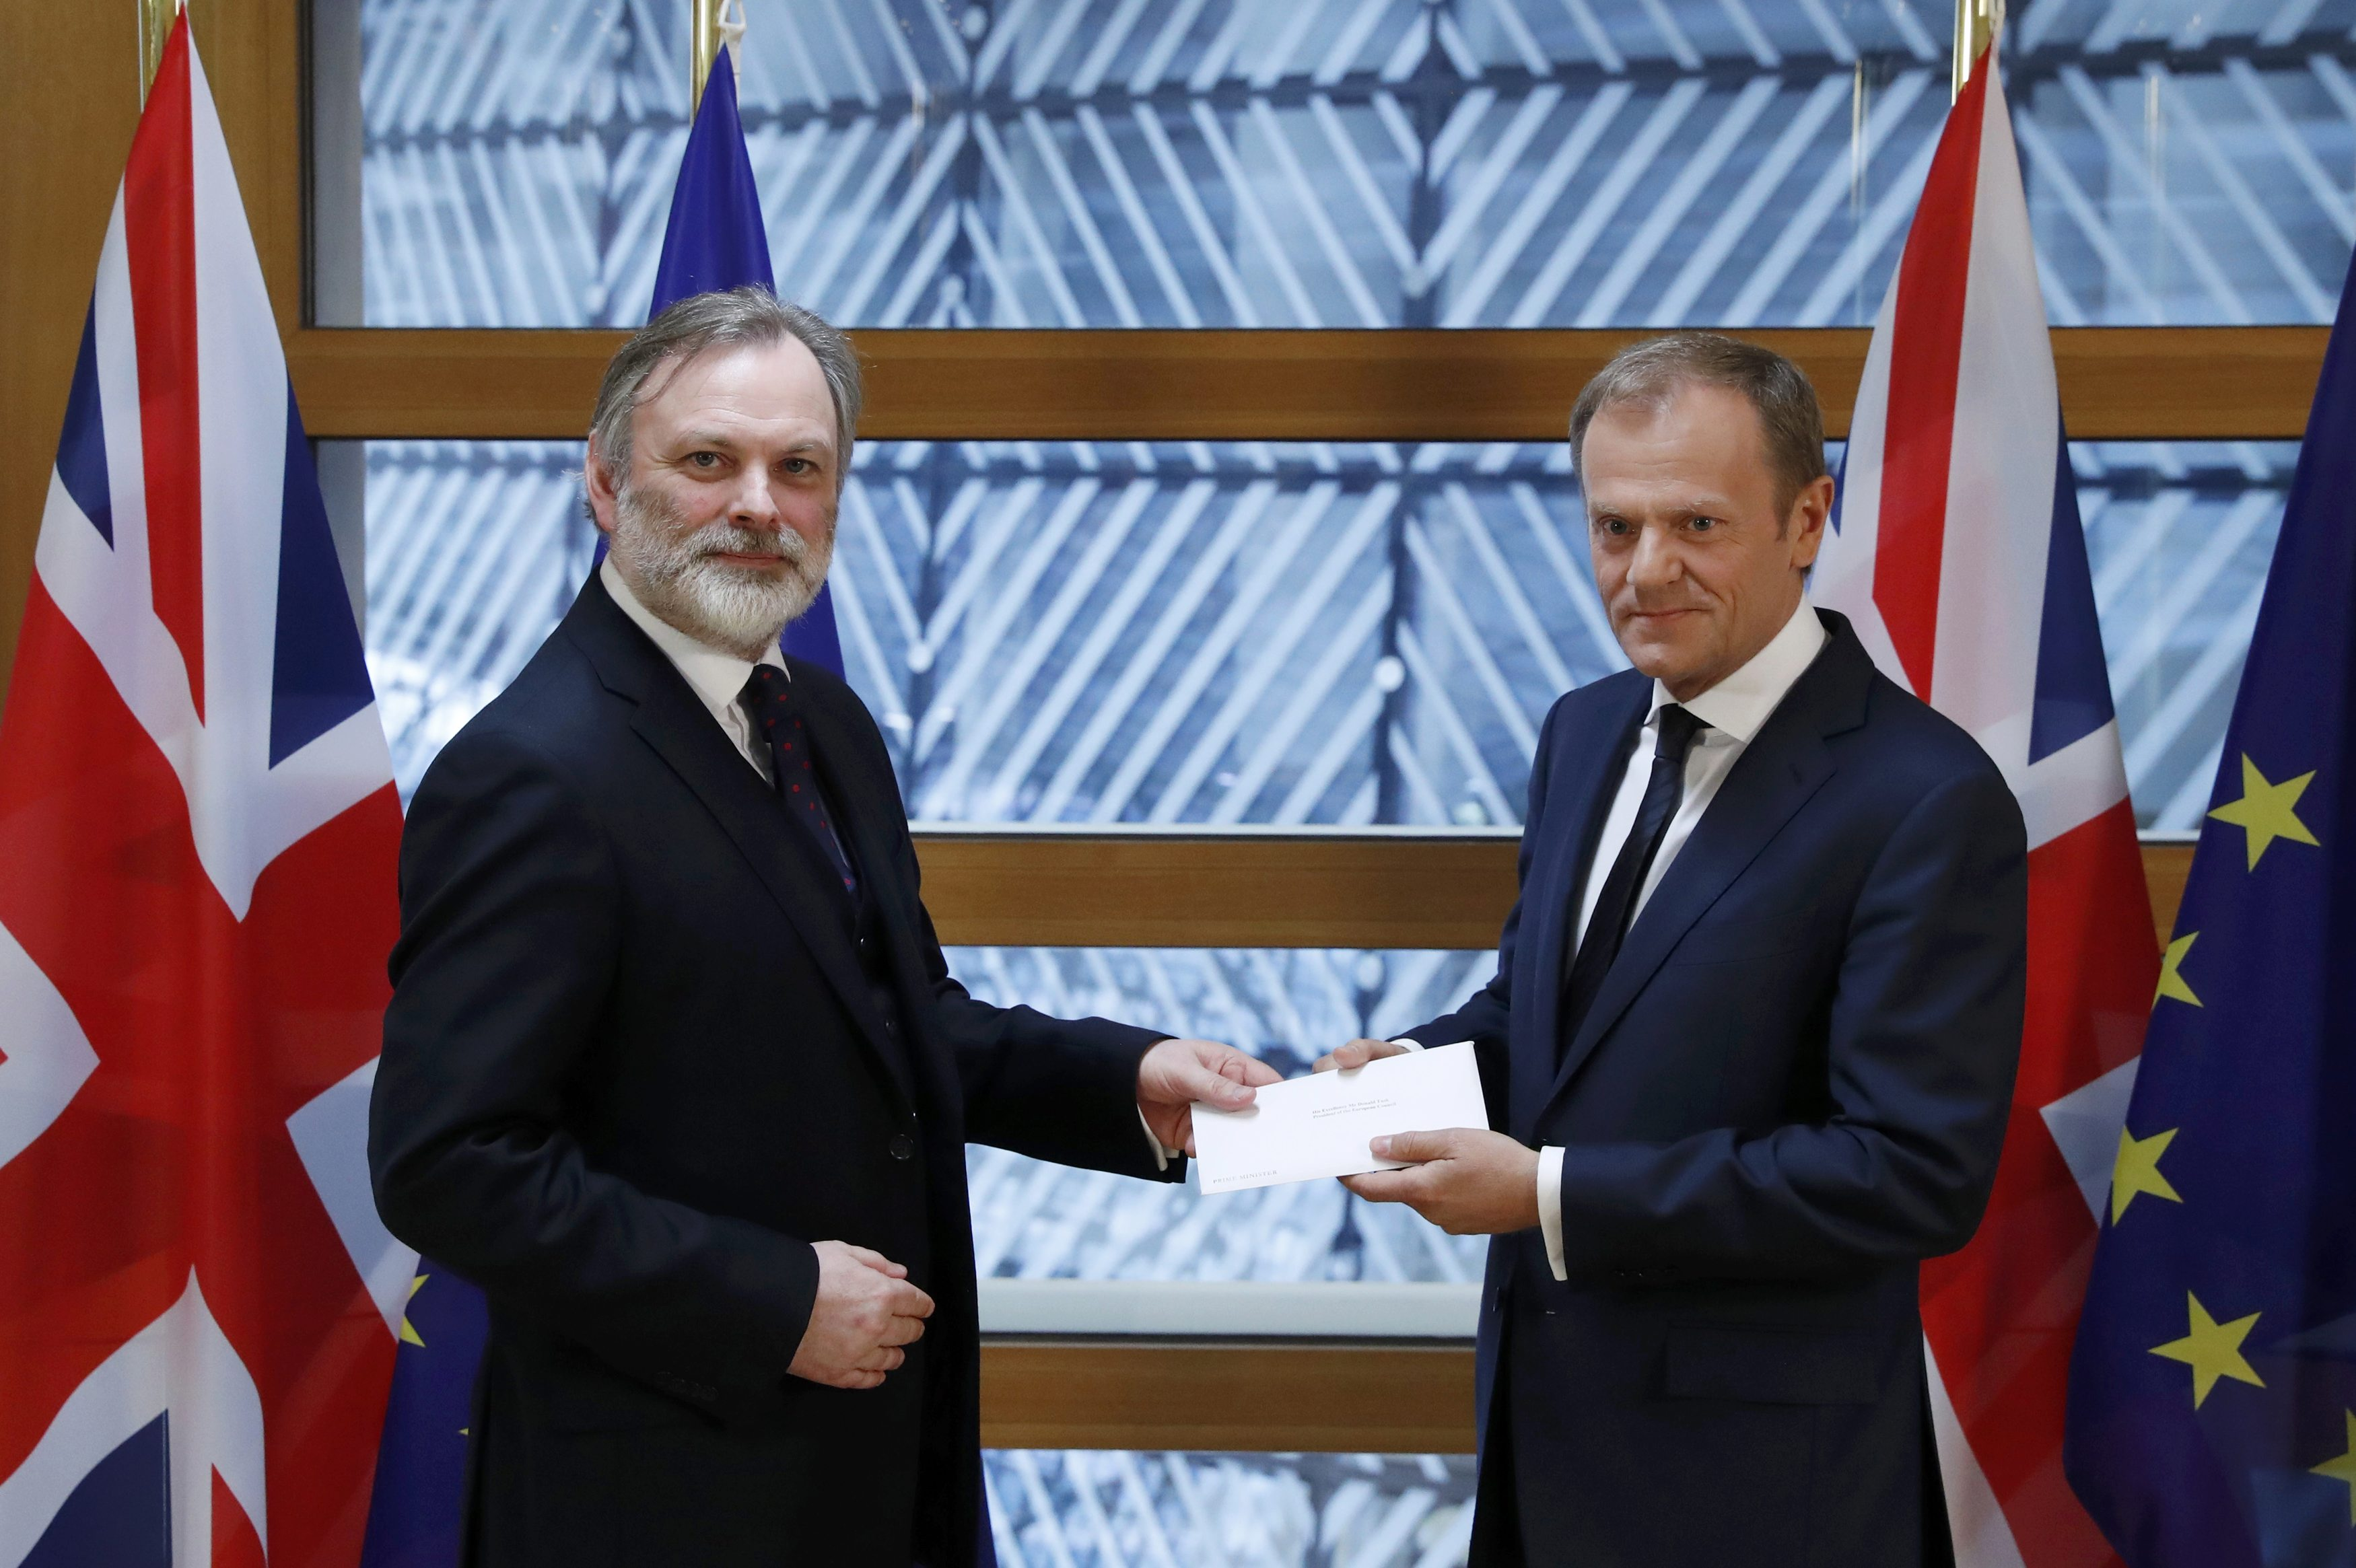 Britain's permanent representative to the European Union Tim Barrow delivers British Prime Minister Theresa May's Brexit letter in notice of the UK's intention to leave the bloc under Article 50 of the EU's Lisbon Treaty to EU Council President Donald Tusk in Brussels, Belgium on March 29, 2017.  (REUTERS/Yves Herman)